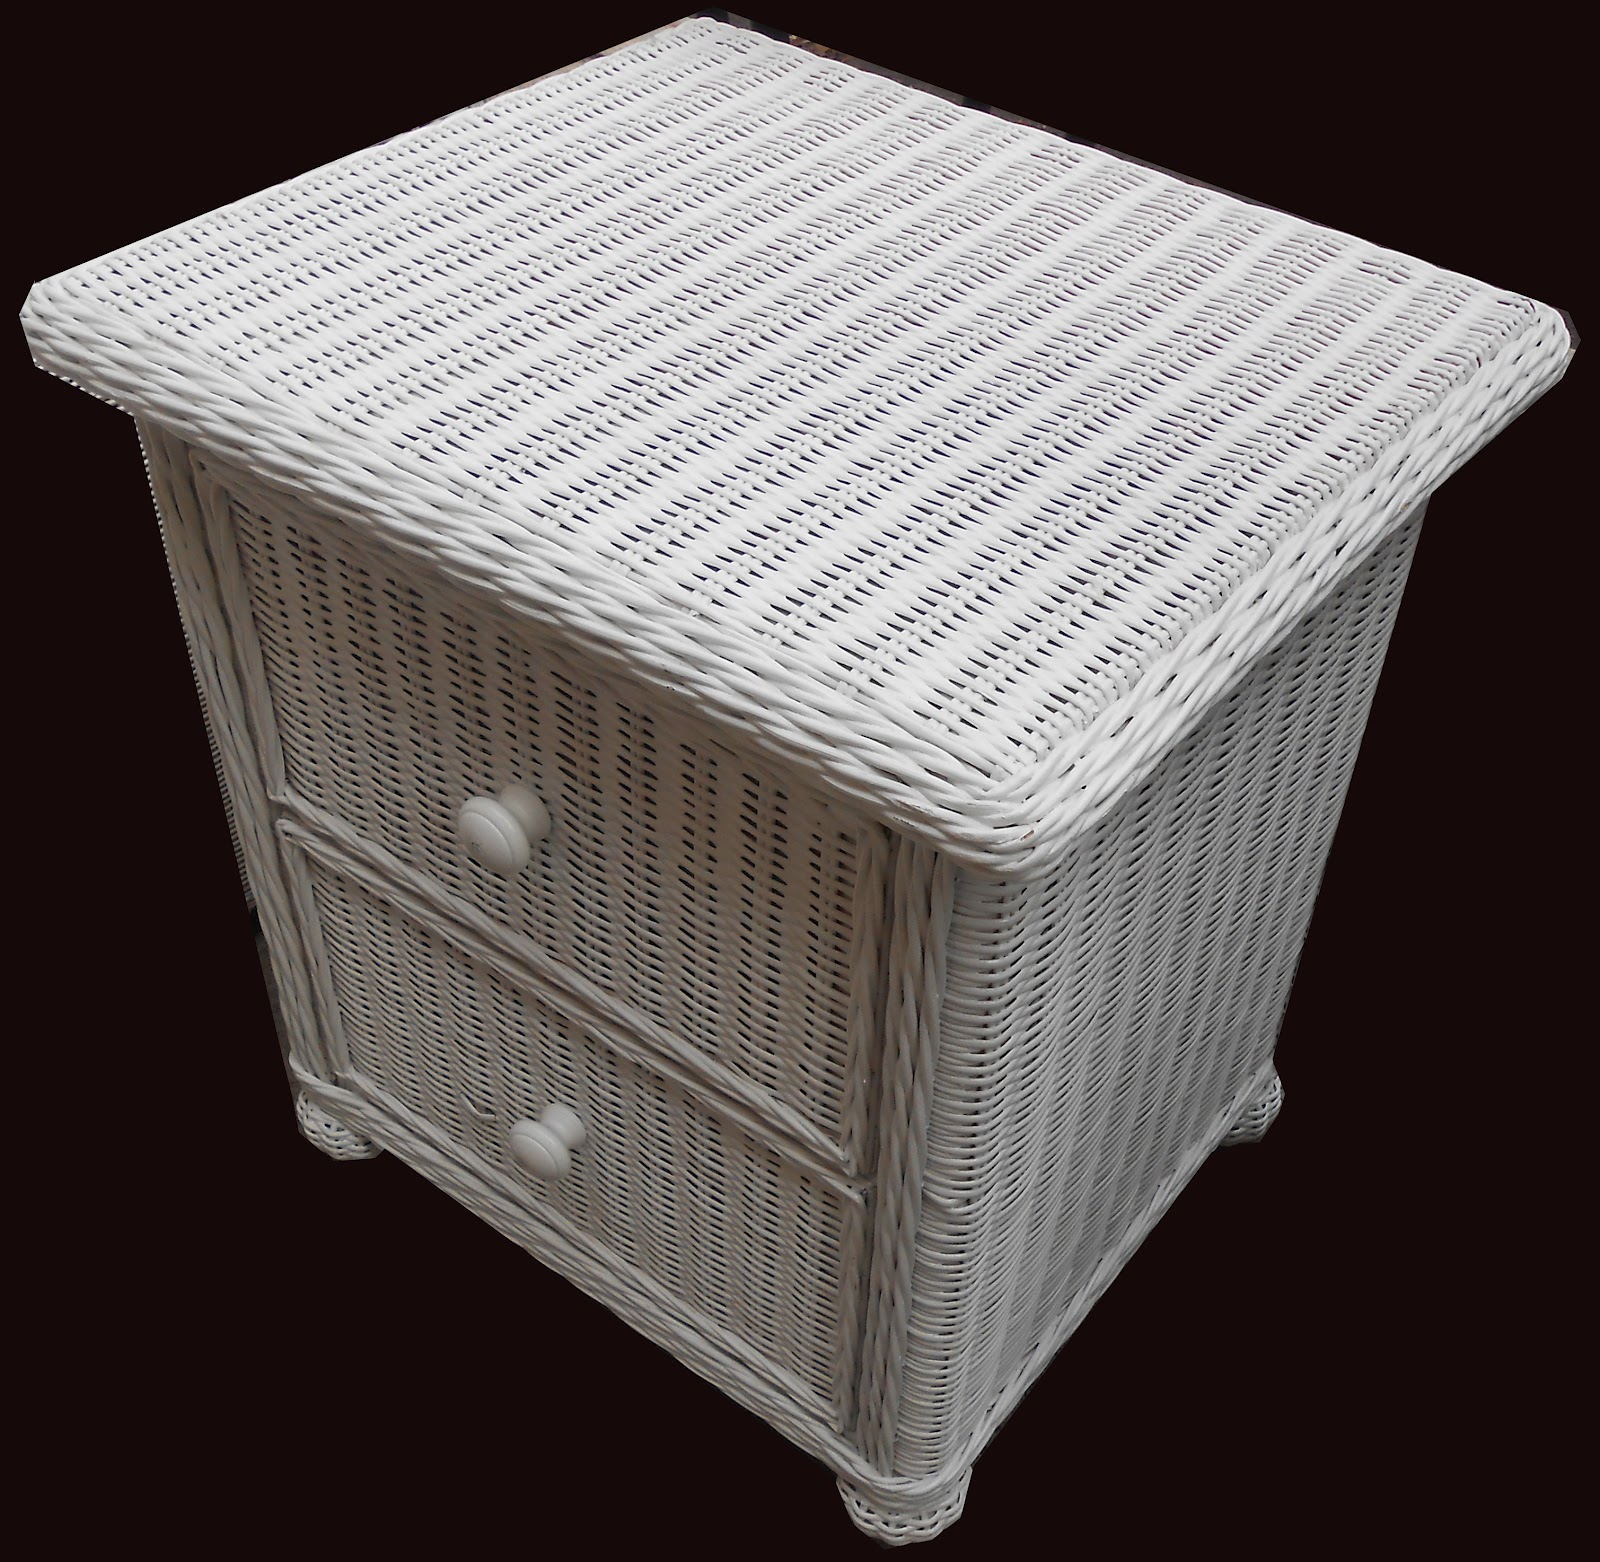 Uhuru Furniture Collectibles 3 Piece White Wicker Bedroom Sold